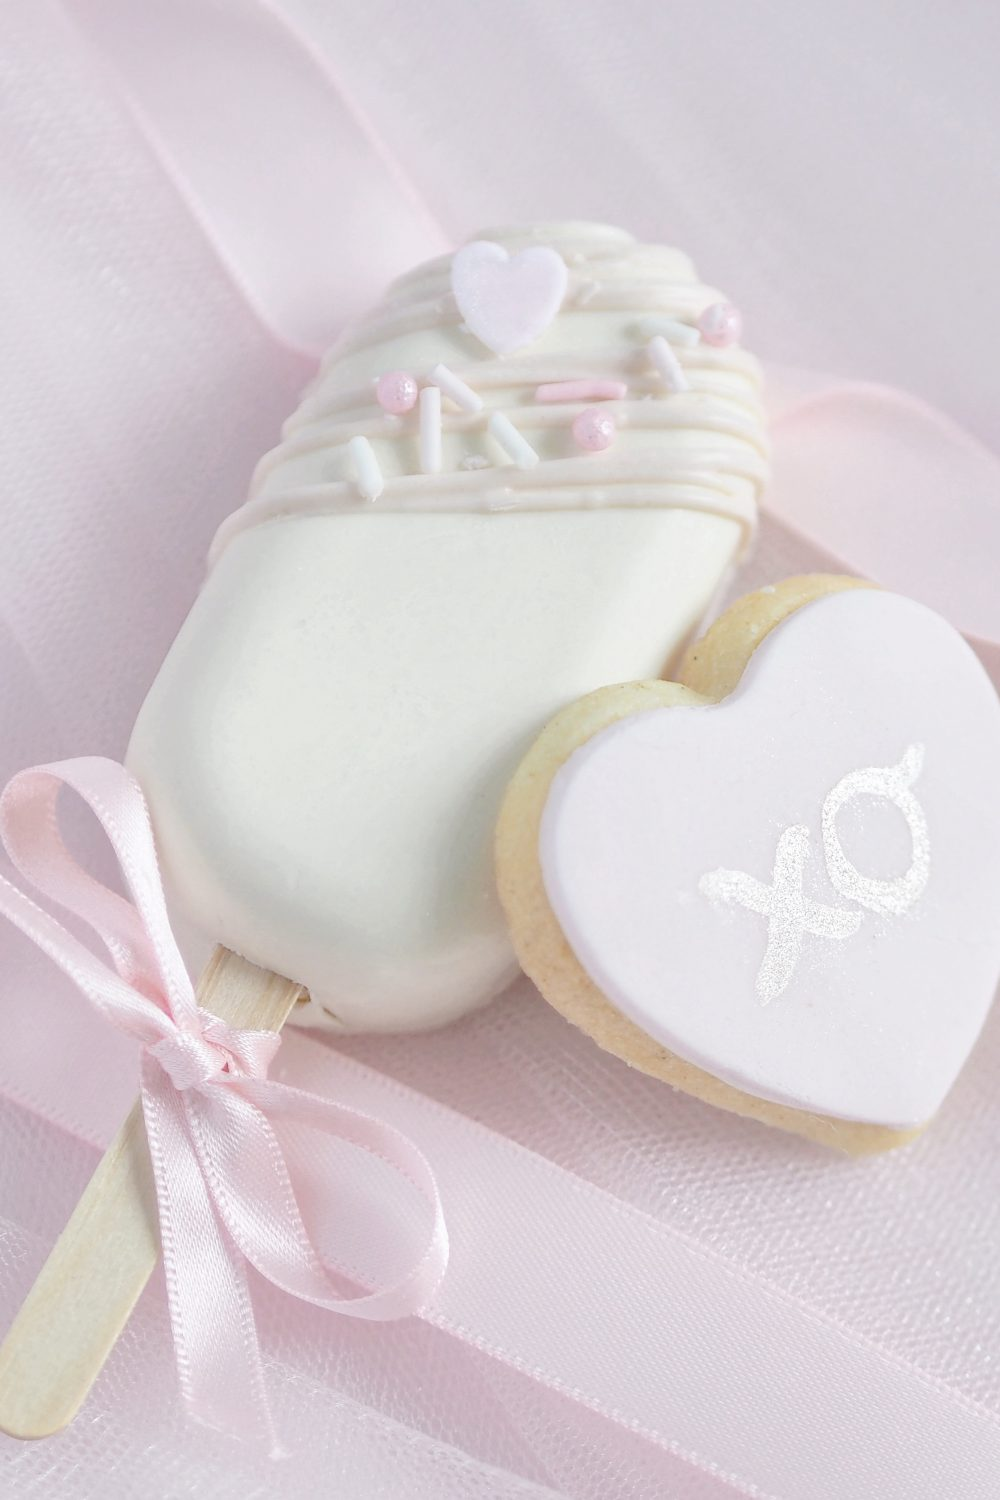 8 Sweet Ideas For Your Valentine's Day Baking